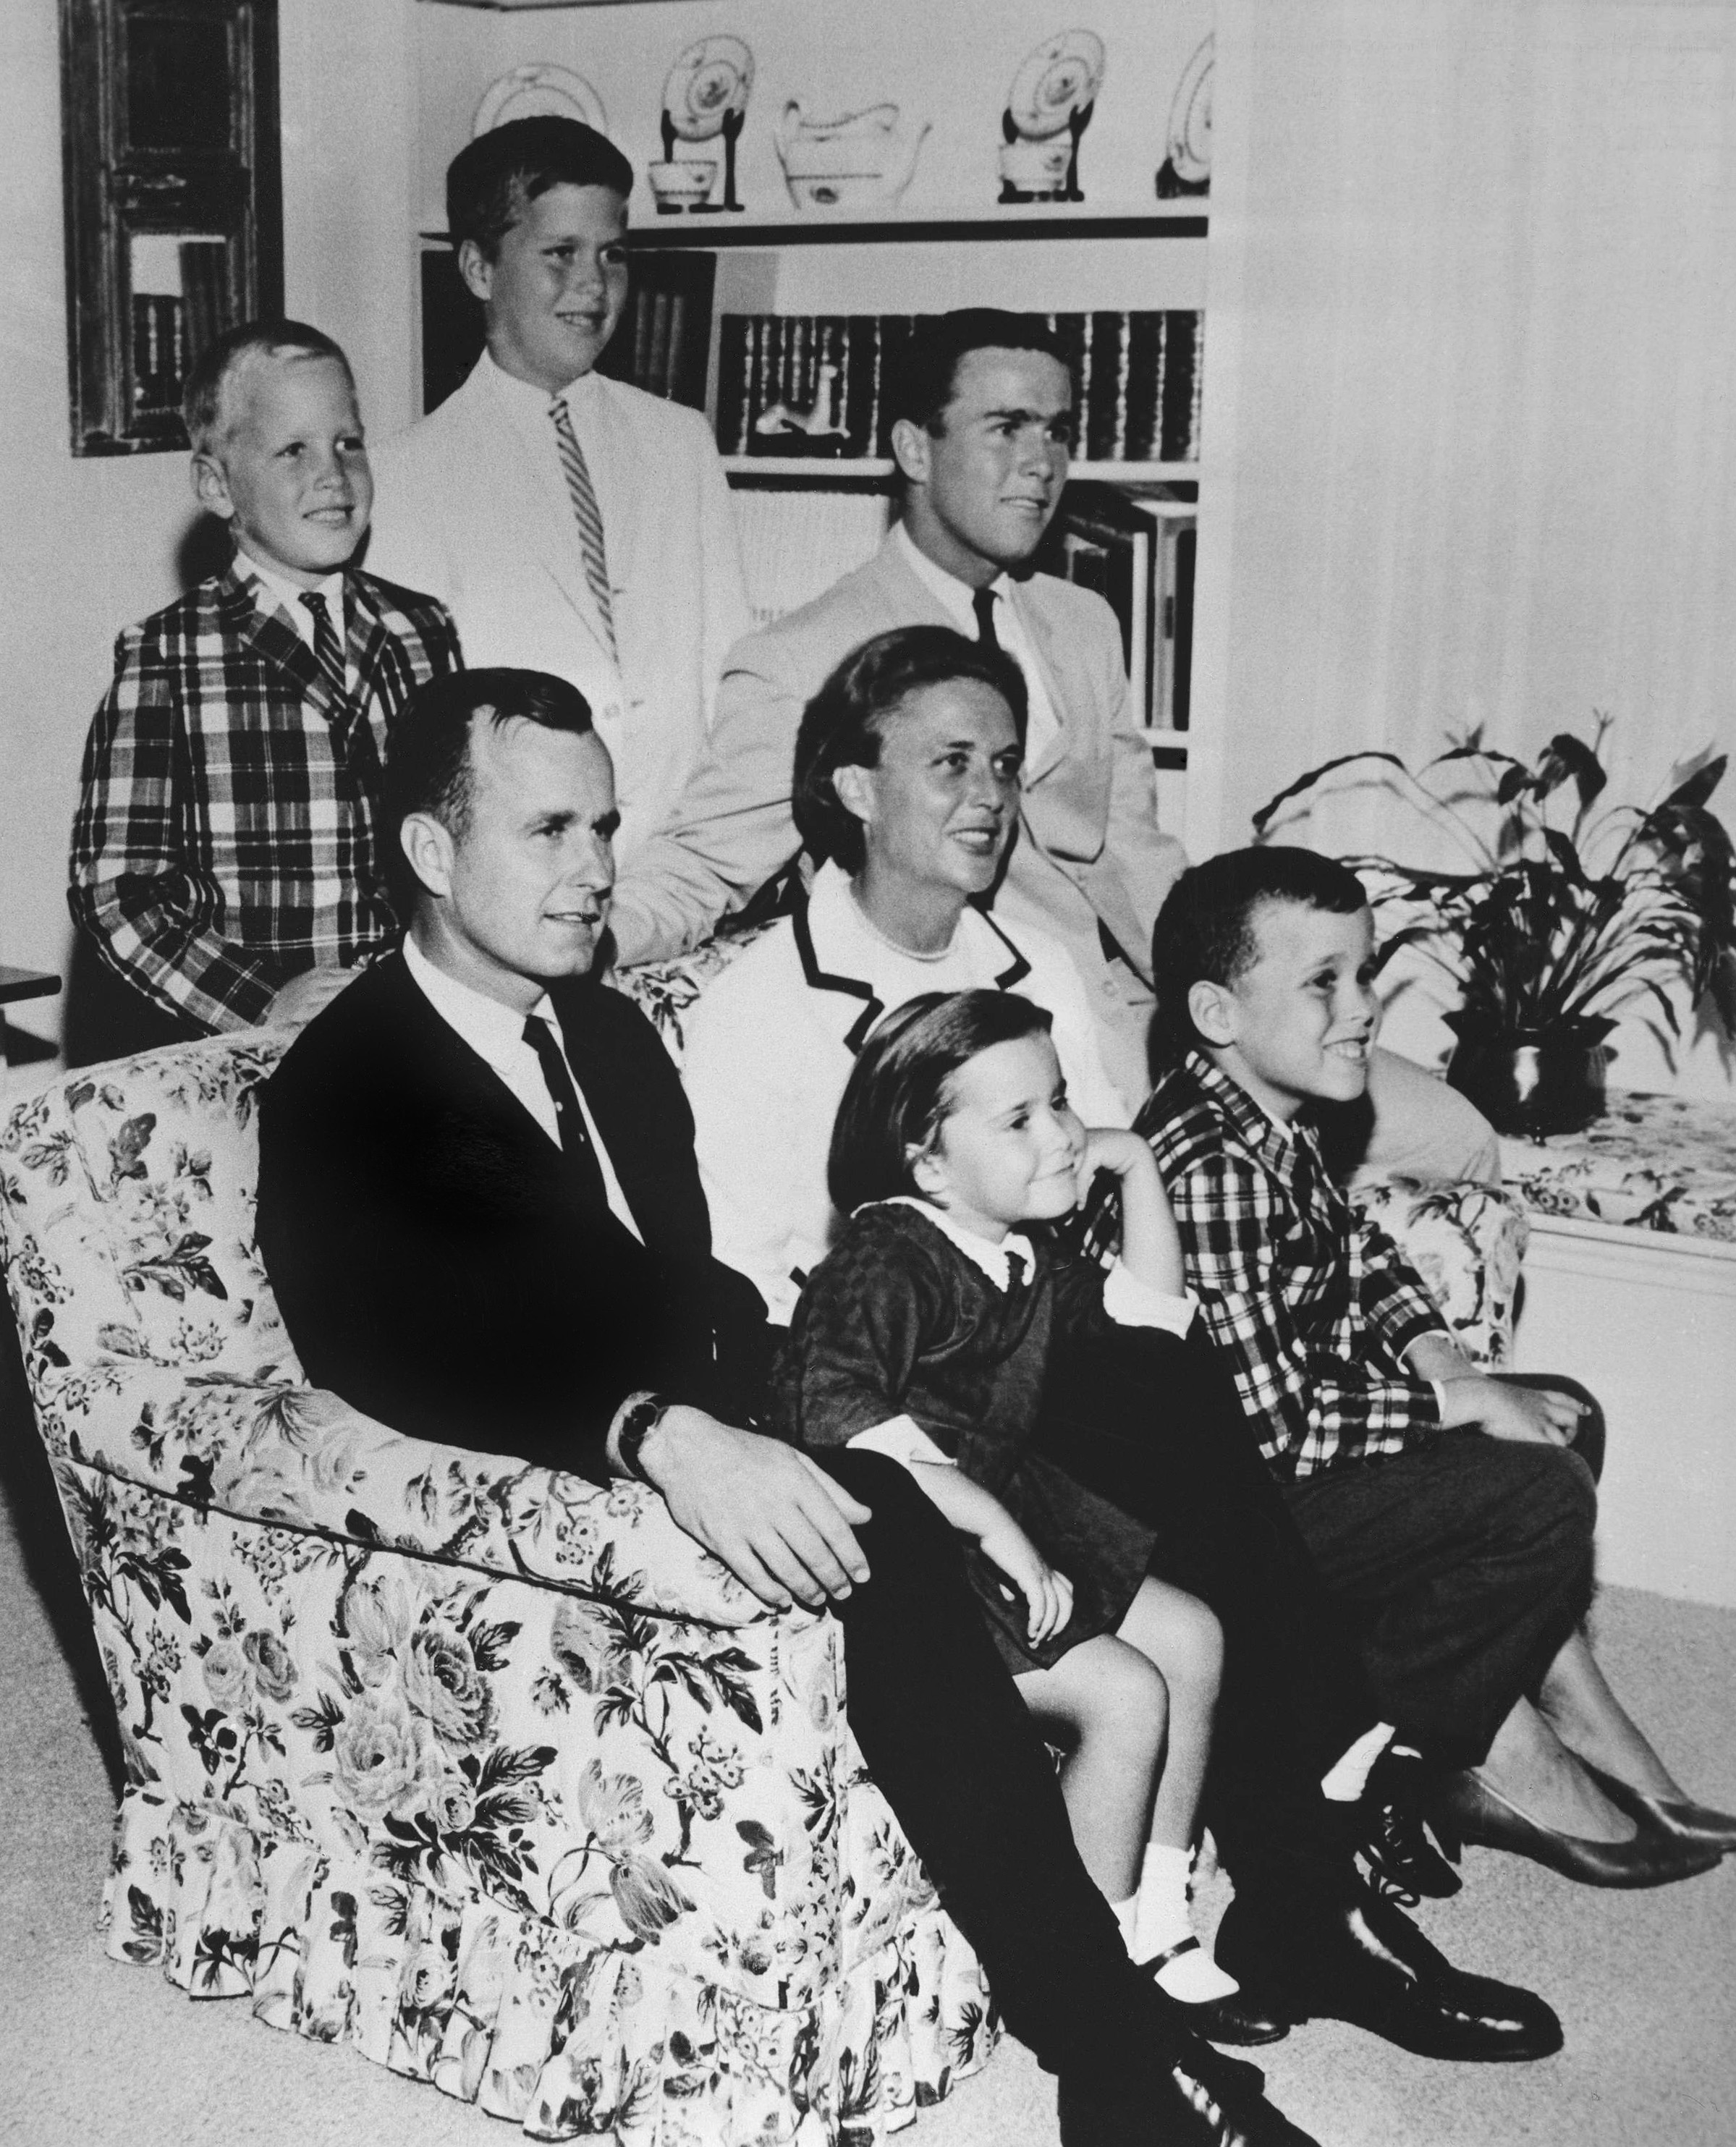 George H.W. Bush sits on couch with his wife Barbara  and their children in 1964.